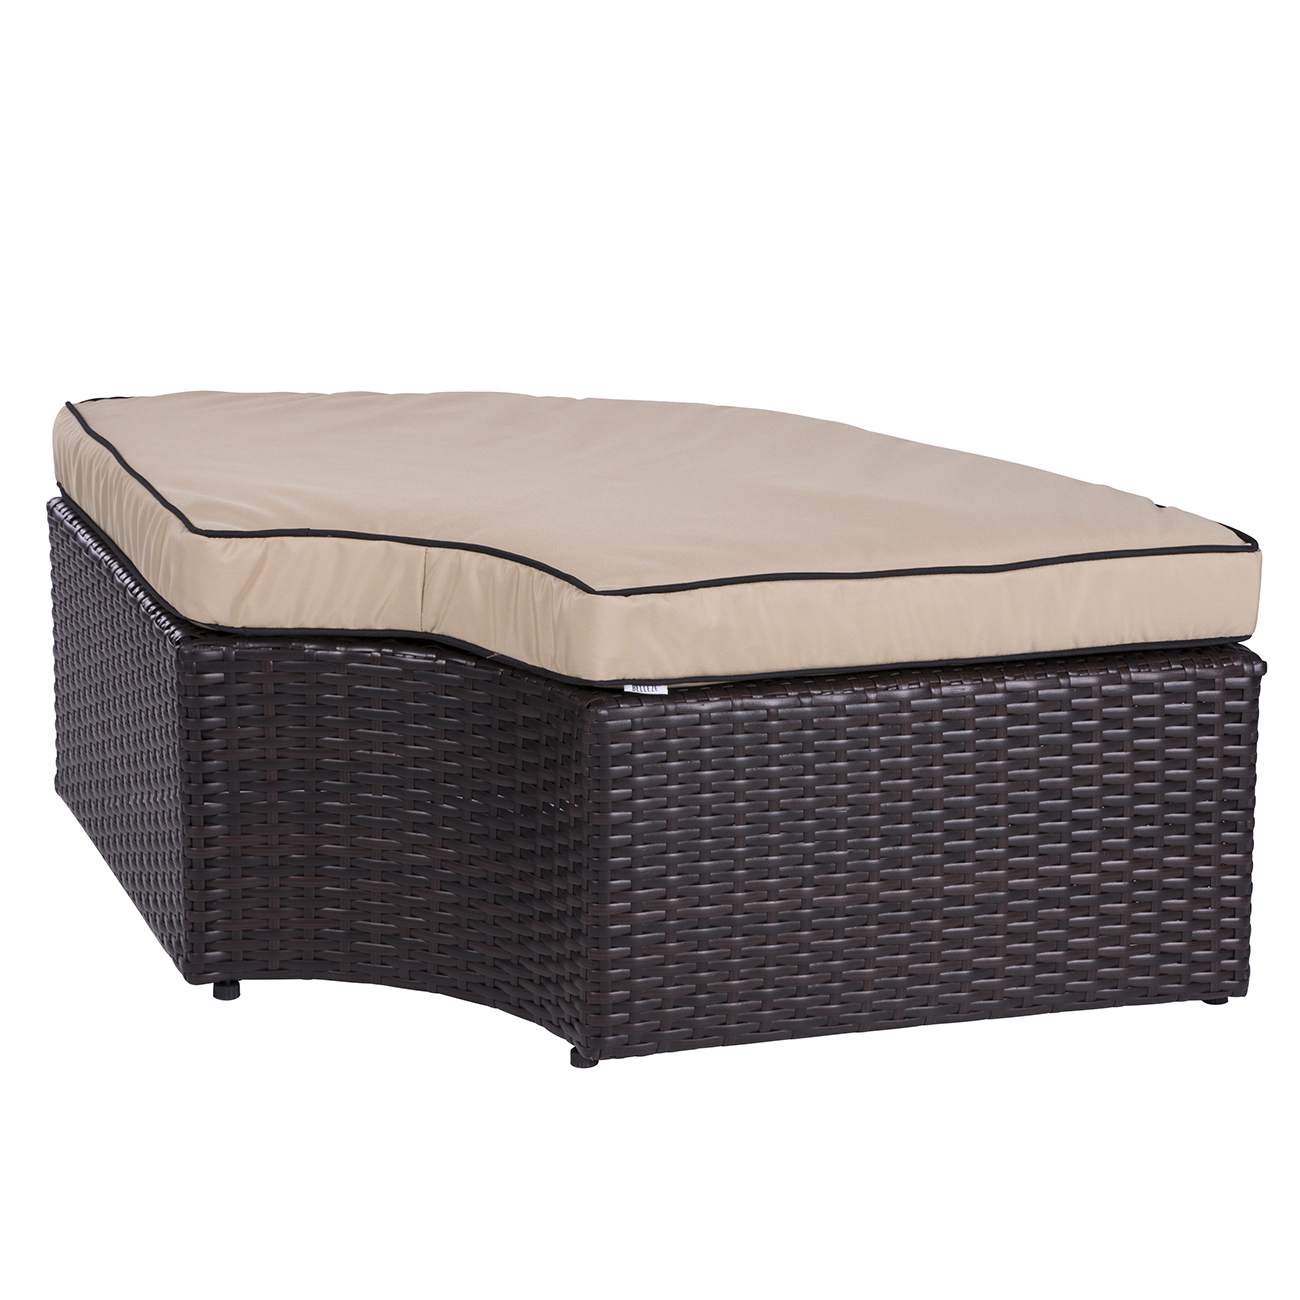 Patio 2 in 1 rattan wicker lounge set round sunbed sofa w - Lounger for the garden crossword ...